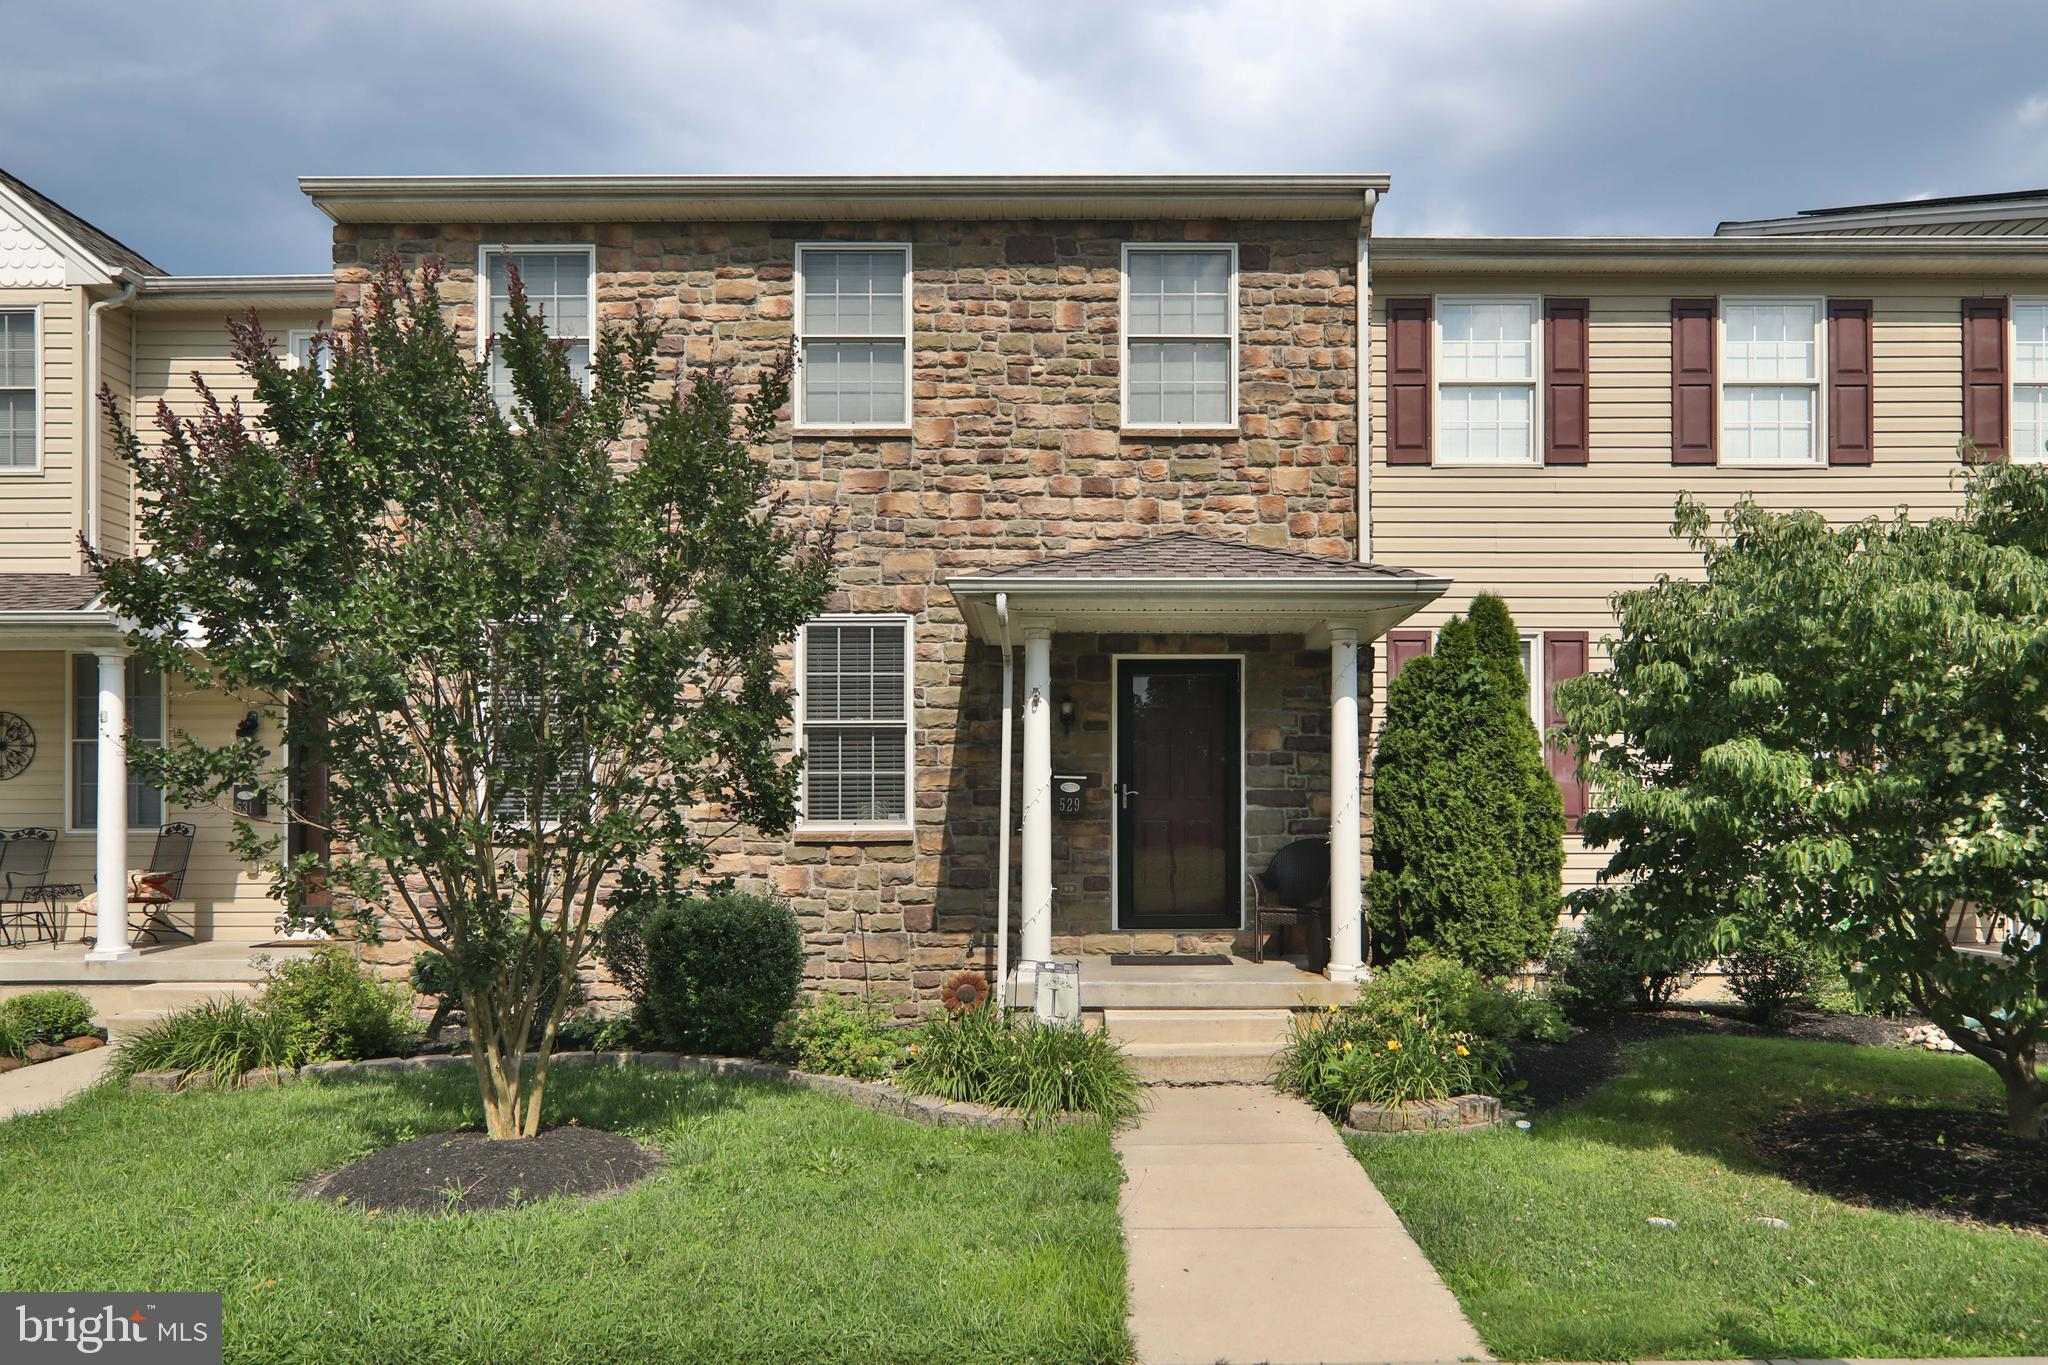 529 MAPLE STREET, BRISTOL, PA 19007